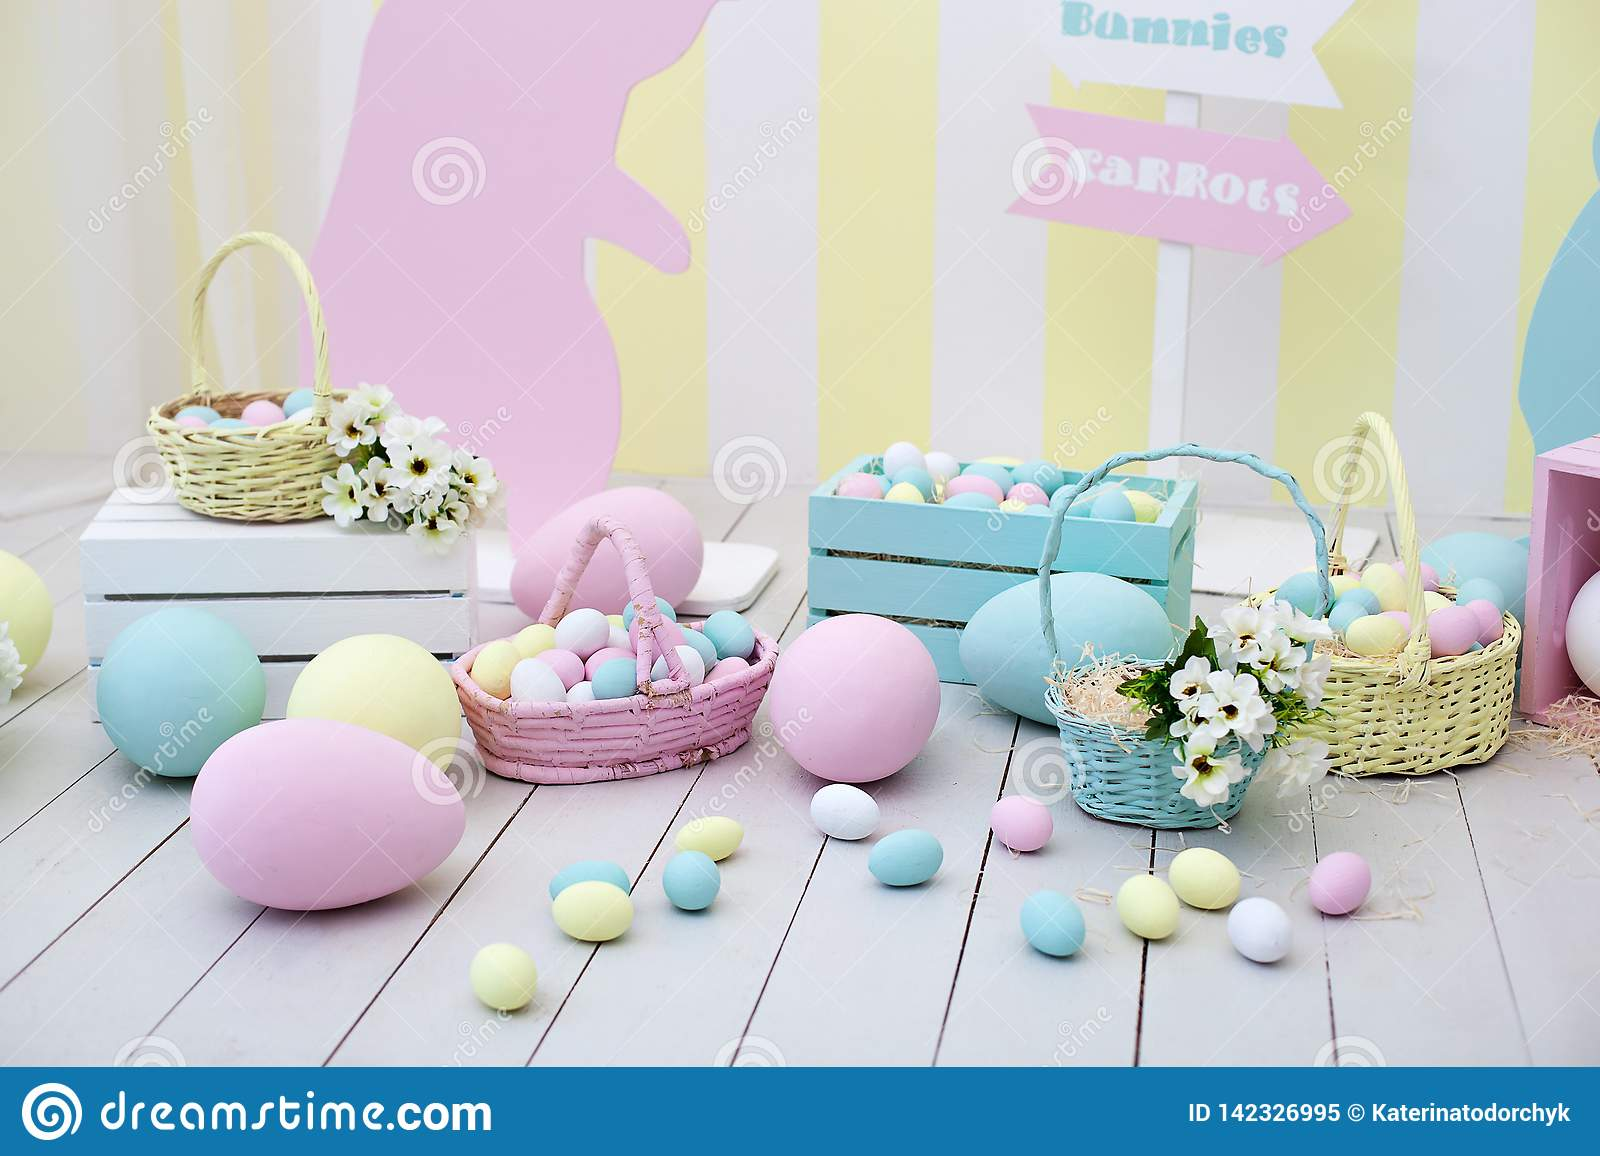 Easter and spring decor. Large multi-colored eggs and Easter bunny.